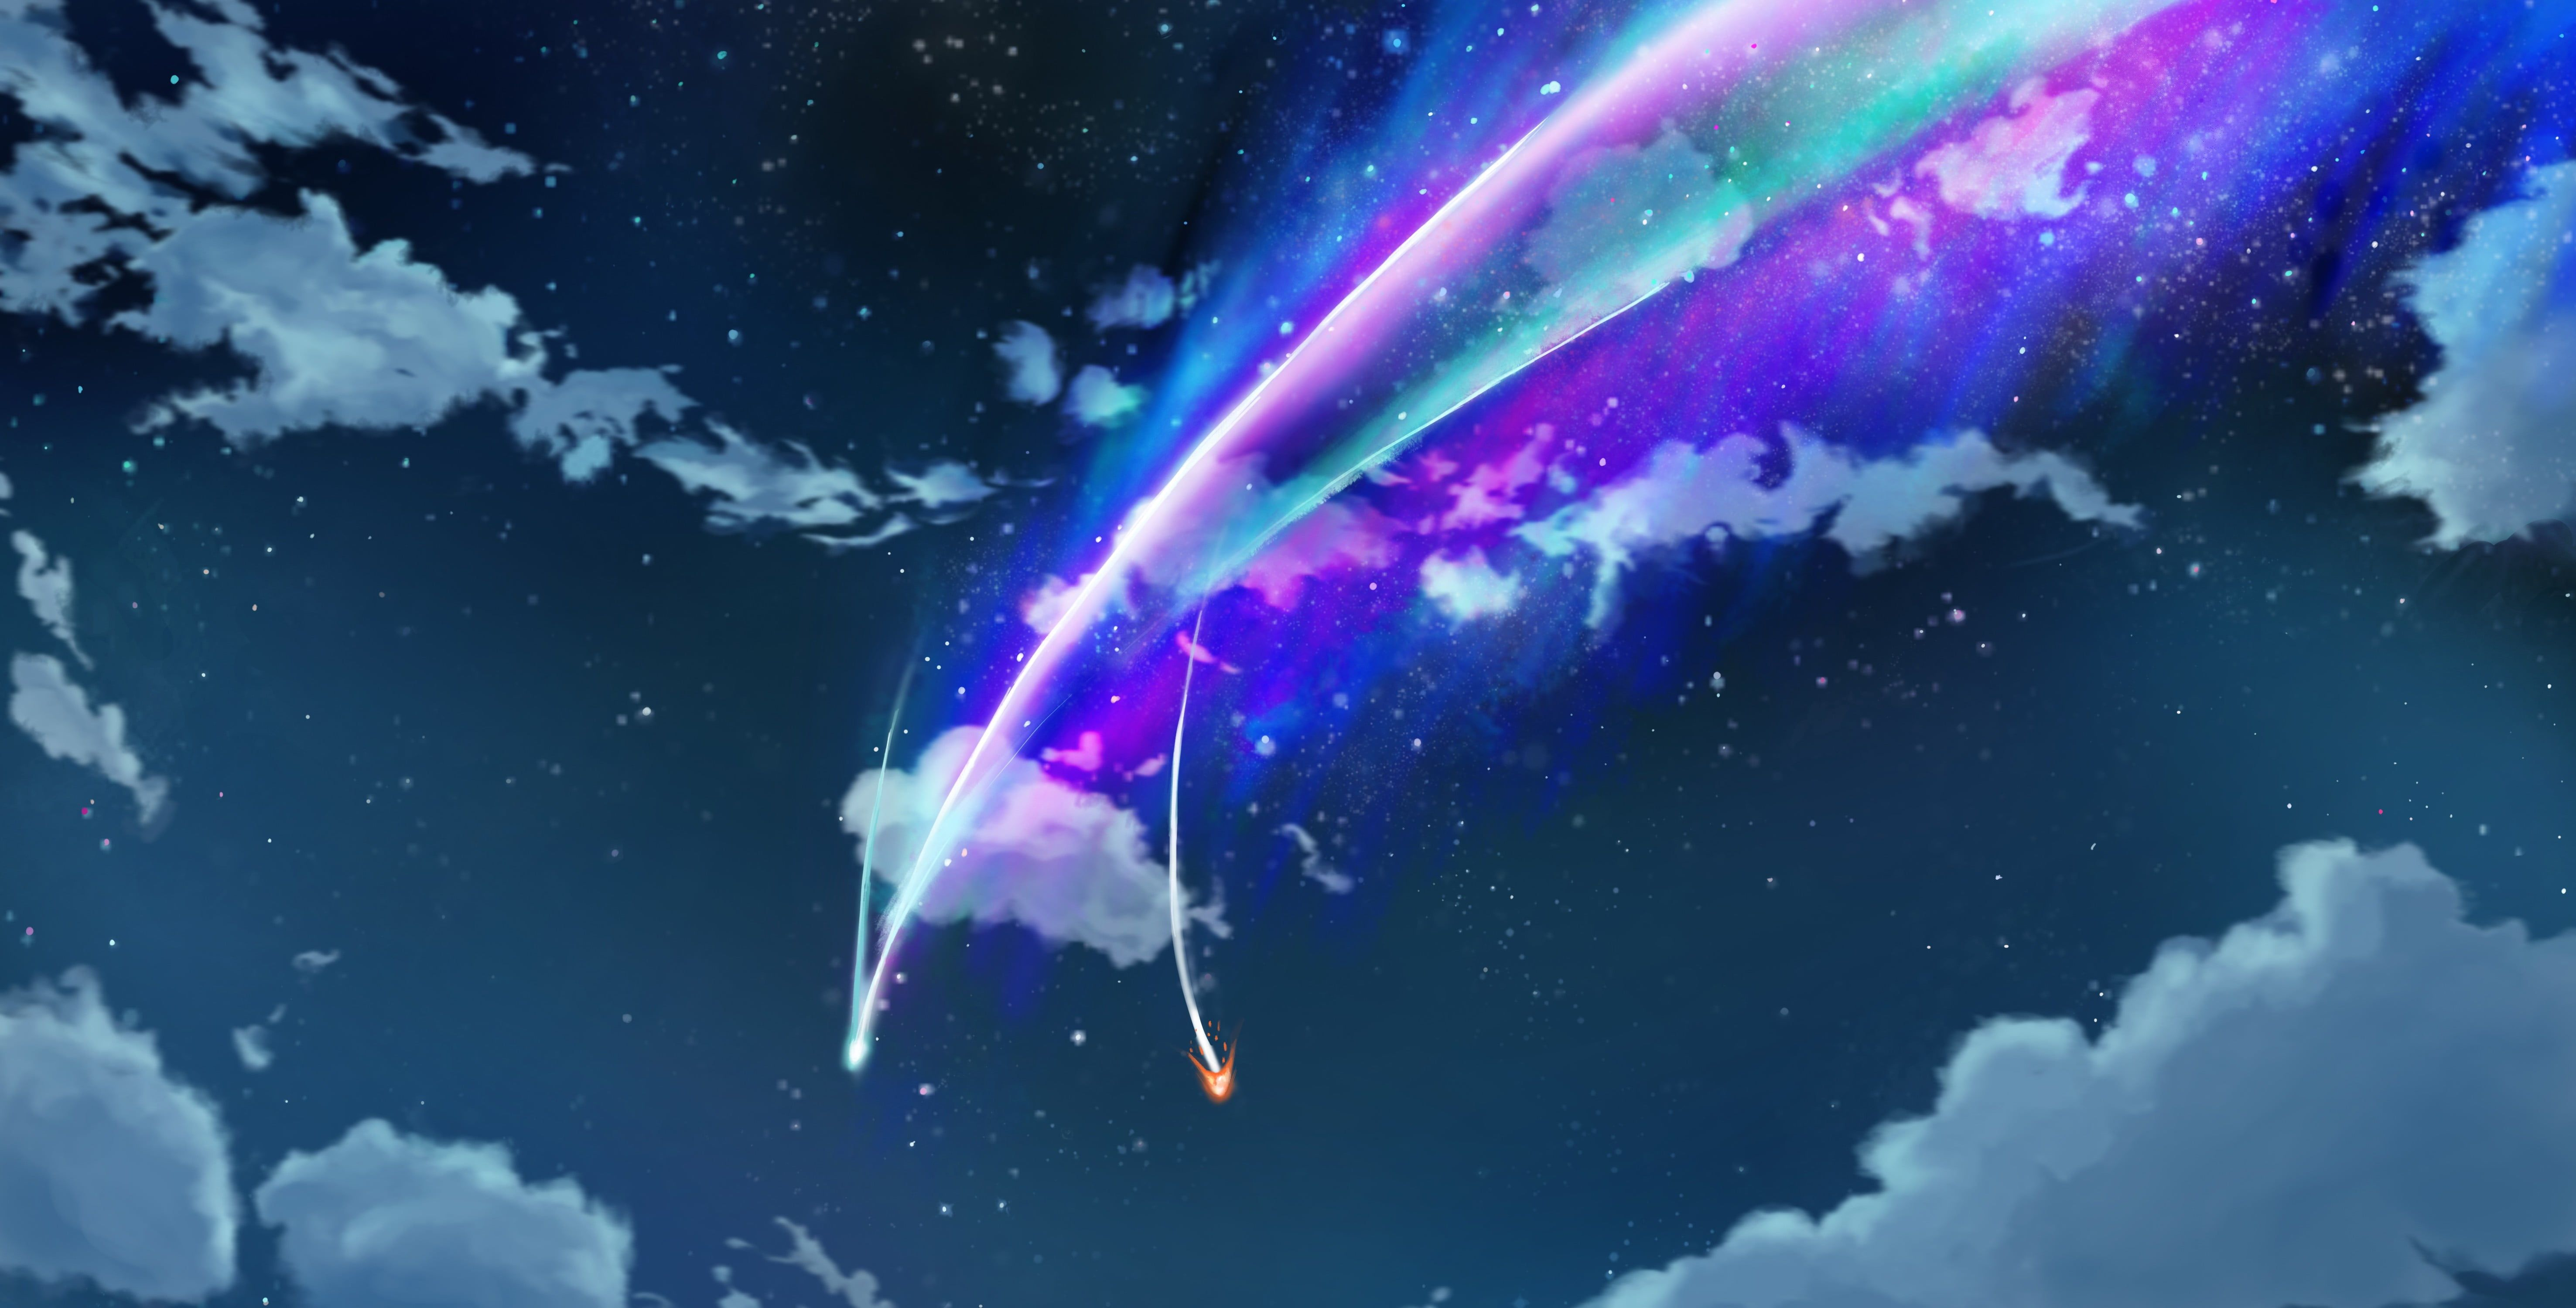 Clouds Photo Your Name Meteor Movie Still Kimi No Na Wa Night Clouds Comet 5k Wallpaper Hdwallpaper Kimi No Na Wa Clouds Photo Kimi No Na Wa Wallpaper